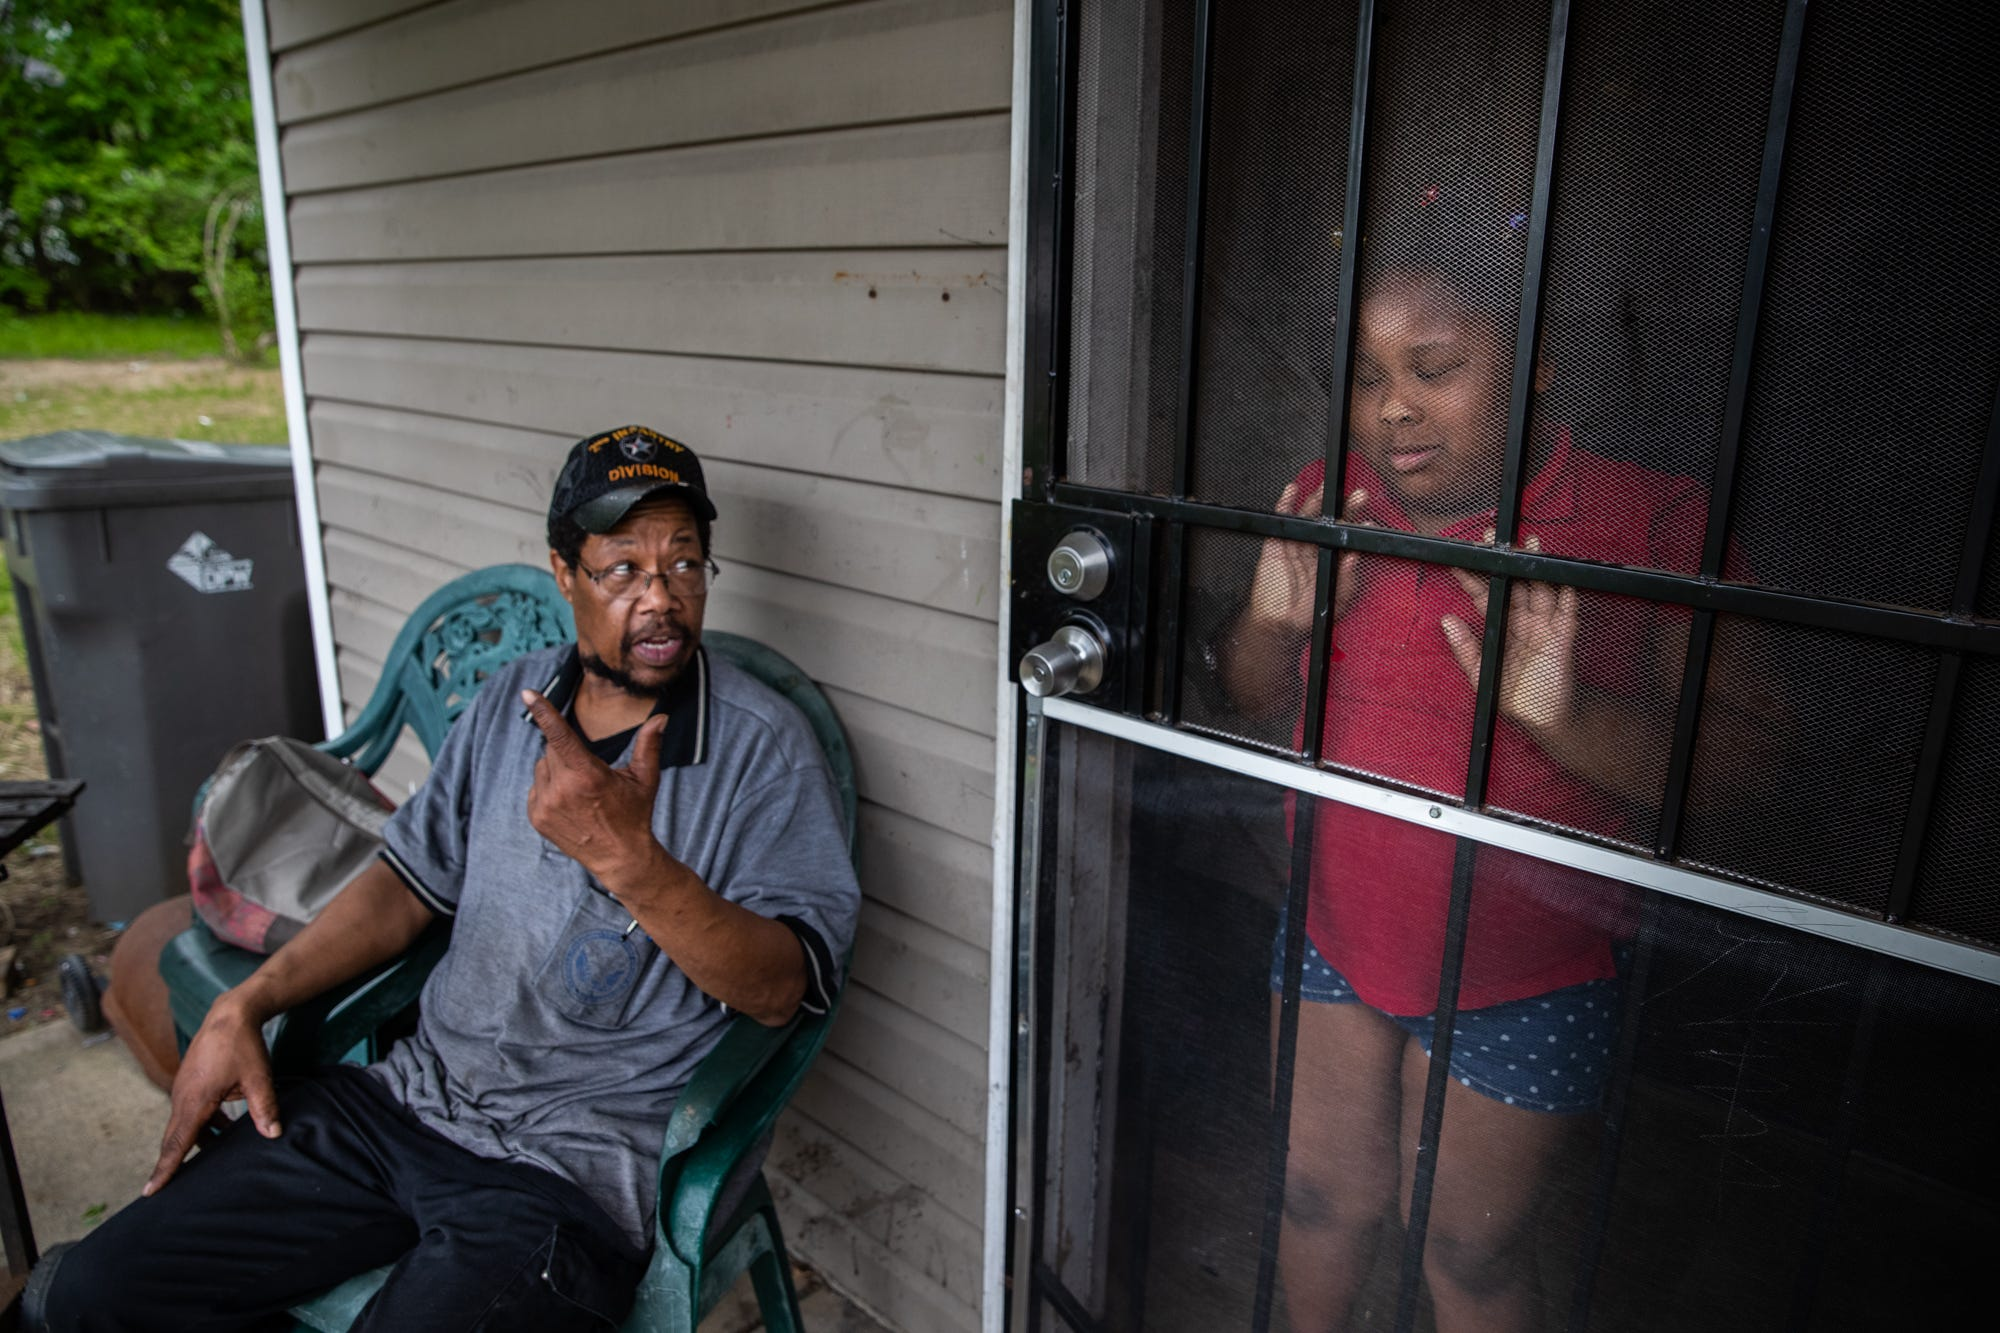 """Robert O'Neil tells his daughter, Mary, 8, to go over to the church parking lot across from their home to pick up the toys she and her three siblings took over. """"This is my day, Monday through Sunday,"""" he said. """"Come home (from work), come in the house, make dinner, do bed, go to work."""" O'Neil, a veteran, works as a third-shift custodian at the Richard Roudebush VA Medical Center to provide for his family. O'Neil says he sleeps two to three hours a day and credits his military background for keeping him going."""